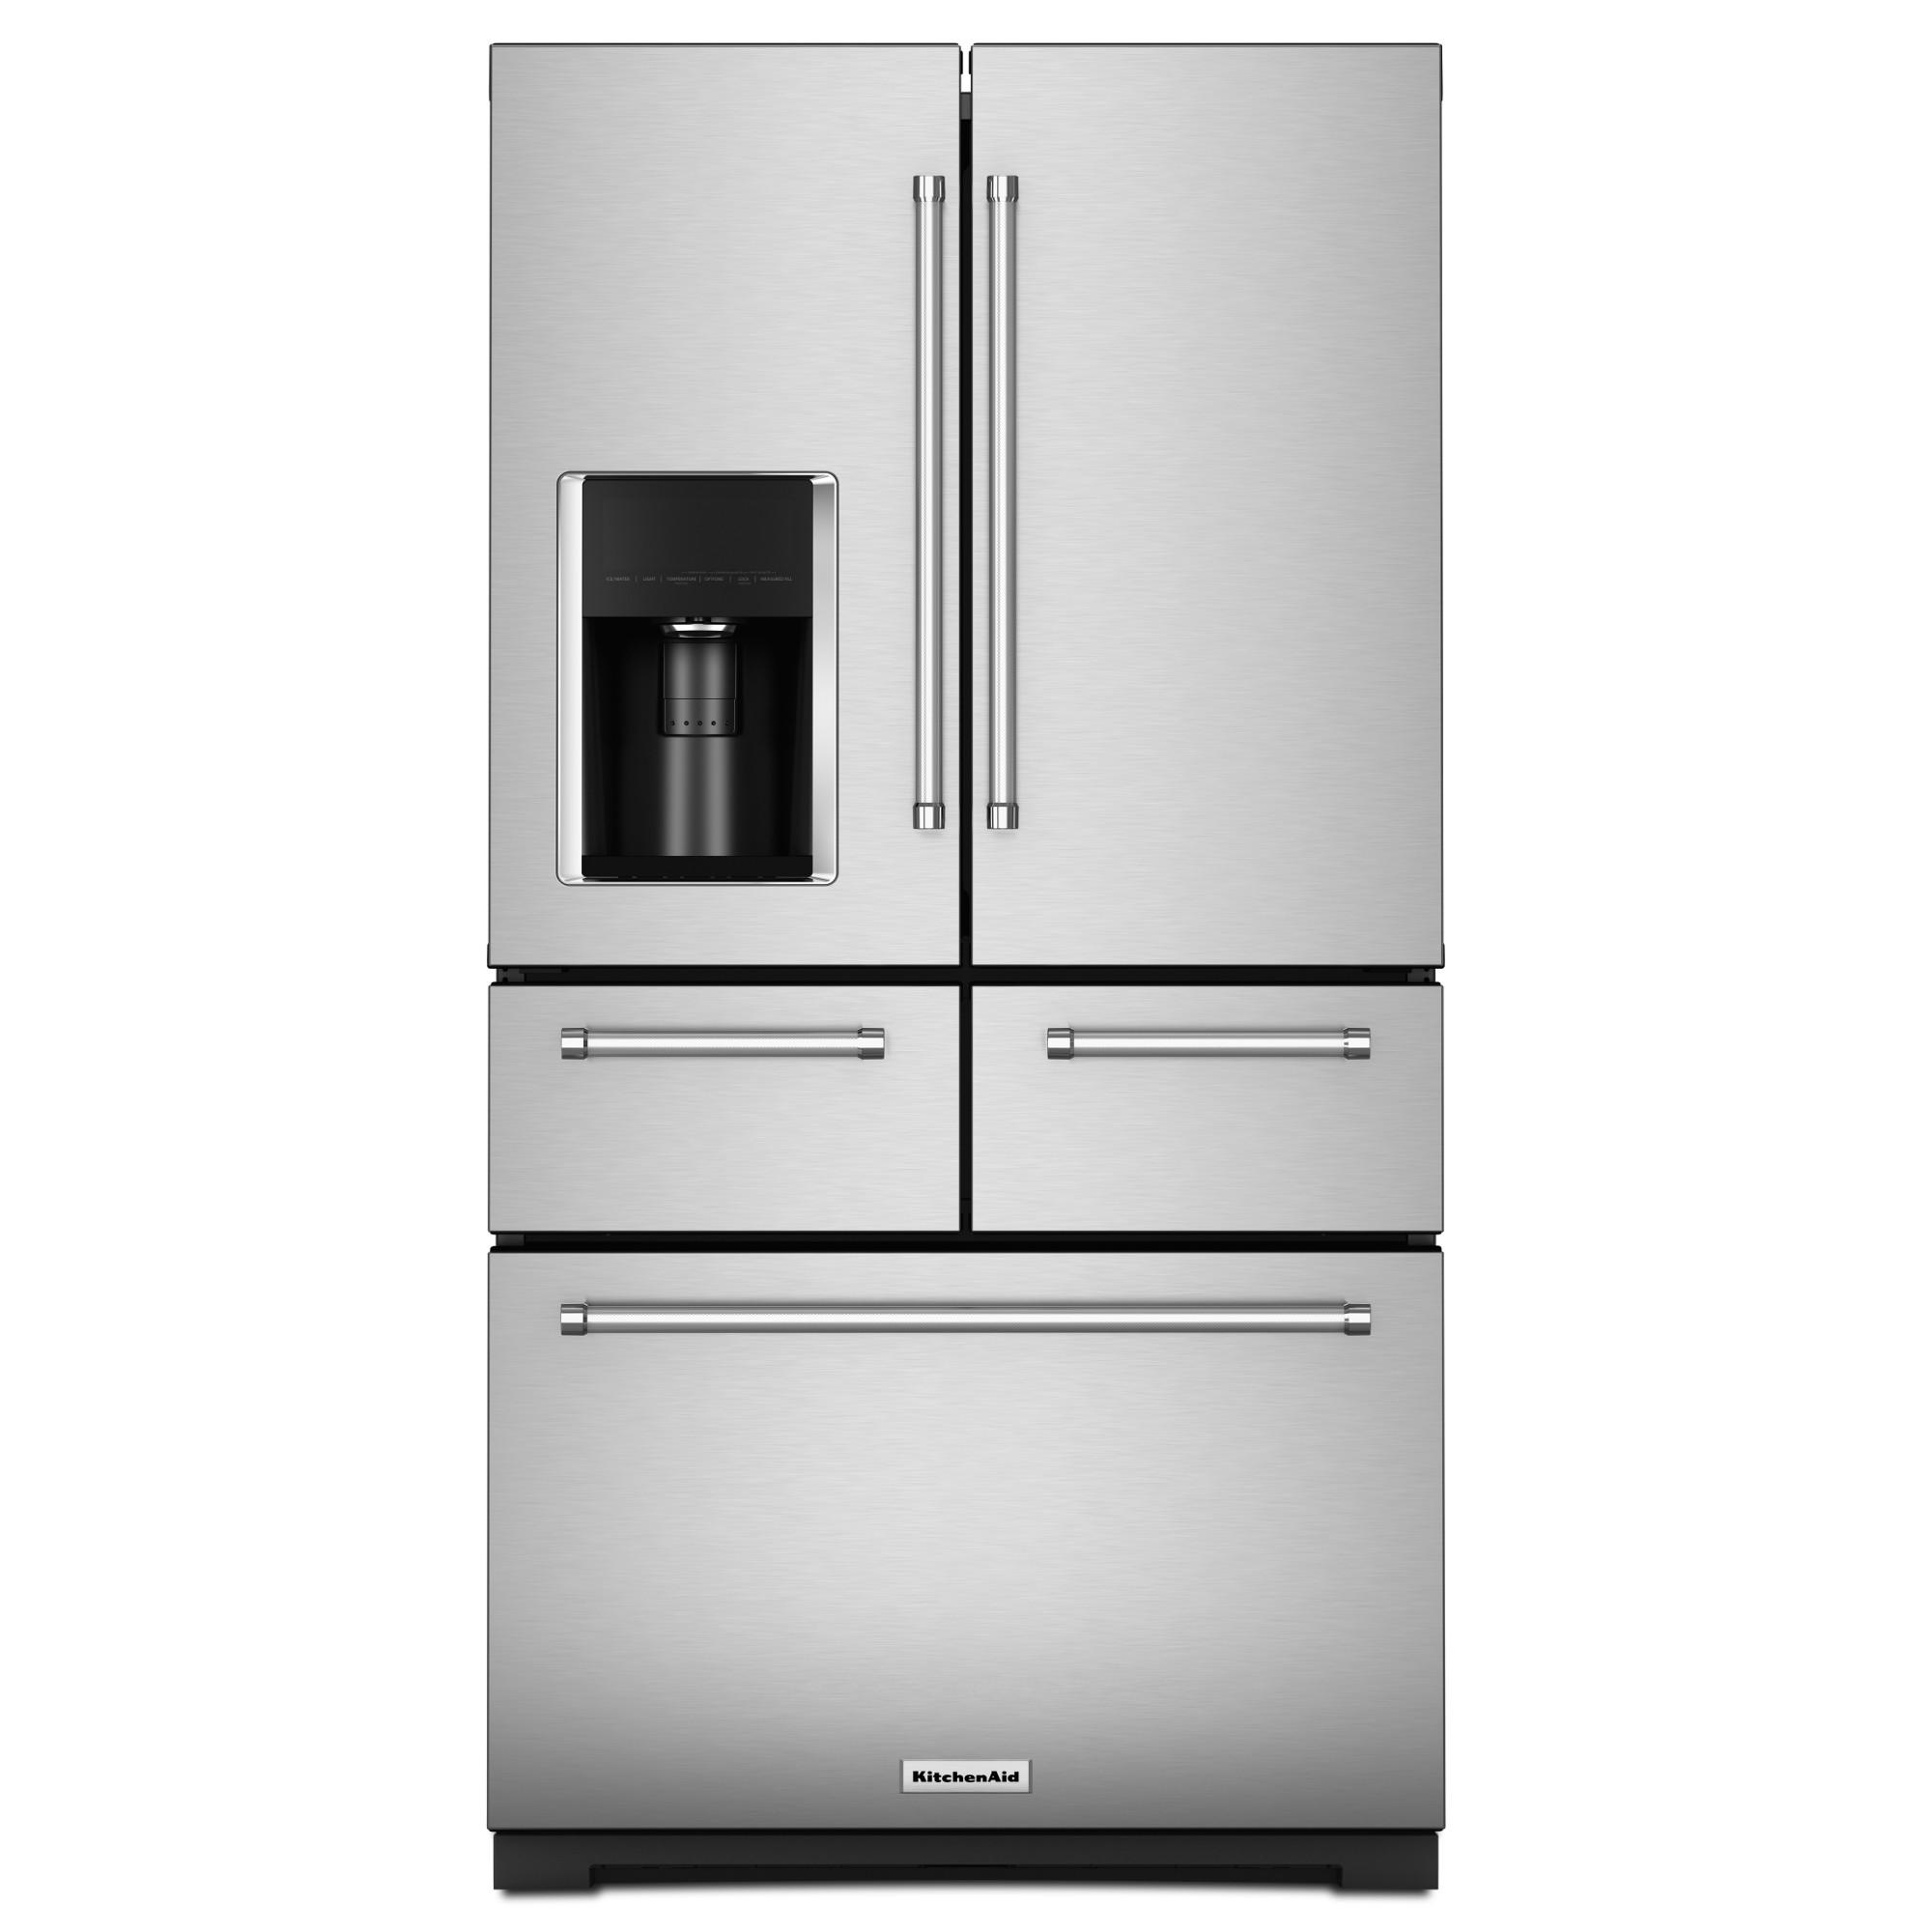 KitchenAid KRMF706ESS 25.8 cu. ft. Multi-Door Refrigerator-Stainless Steel